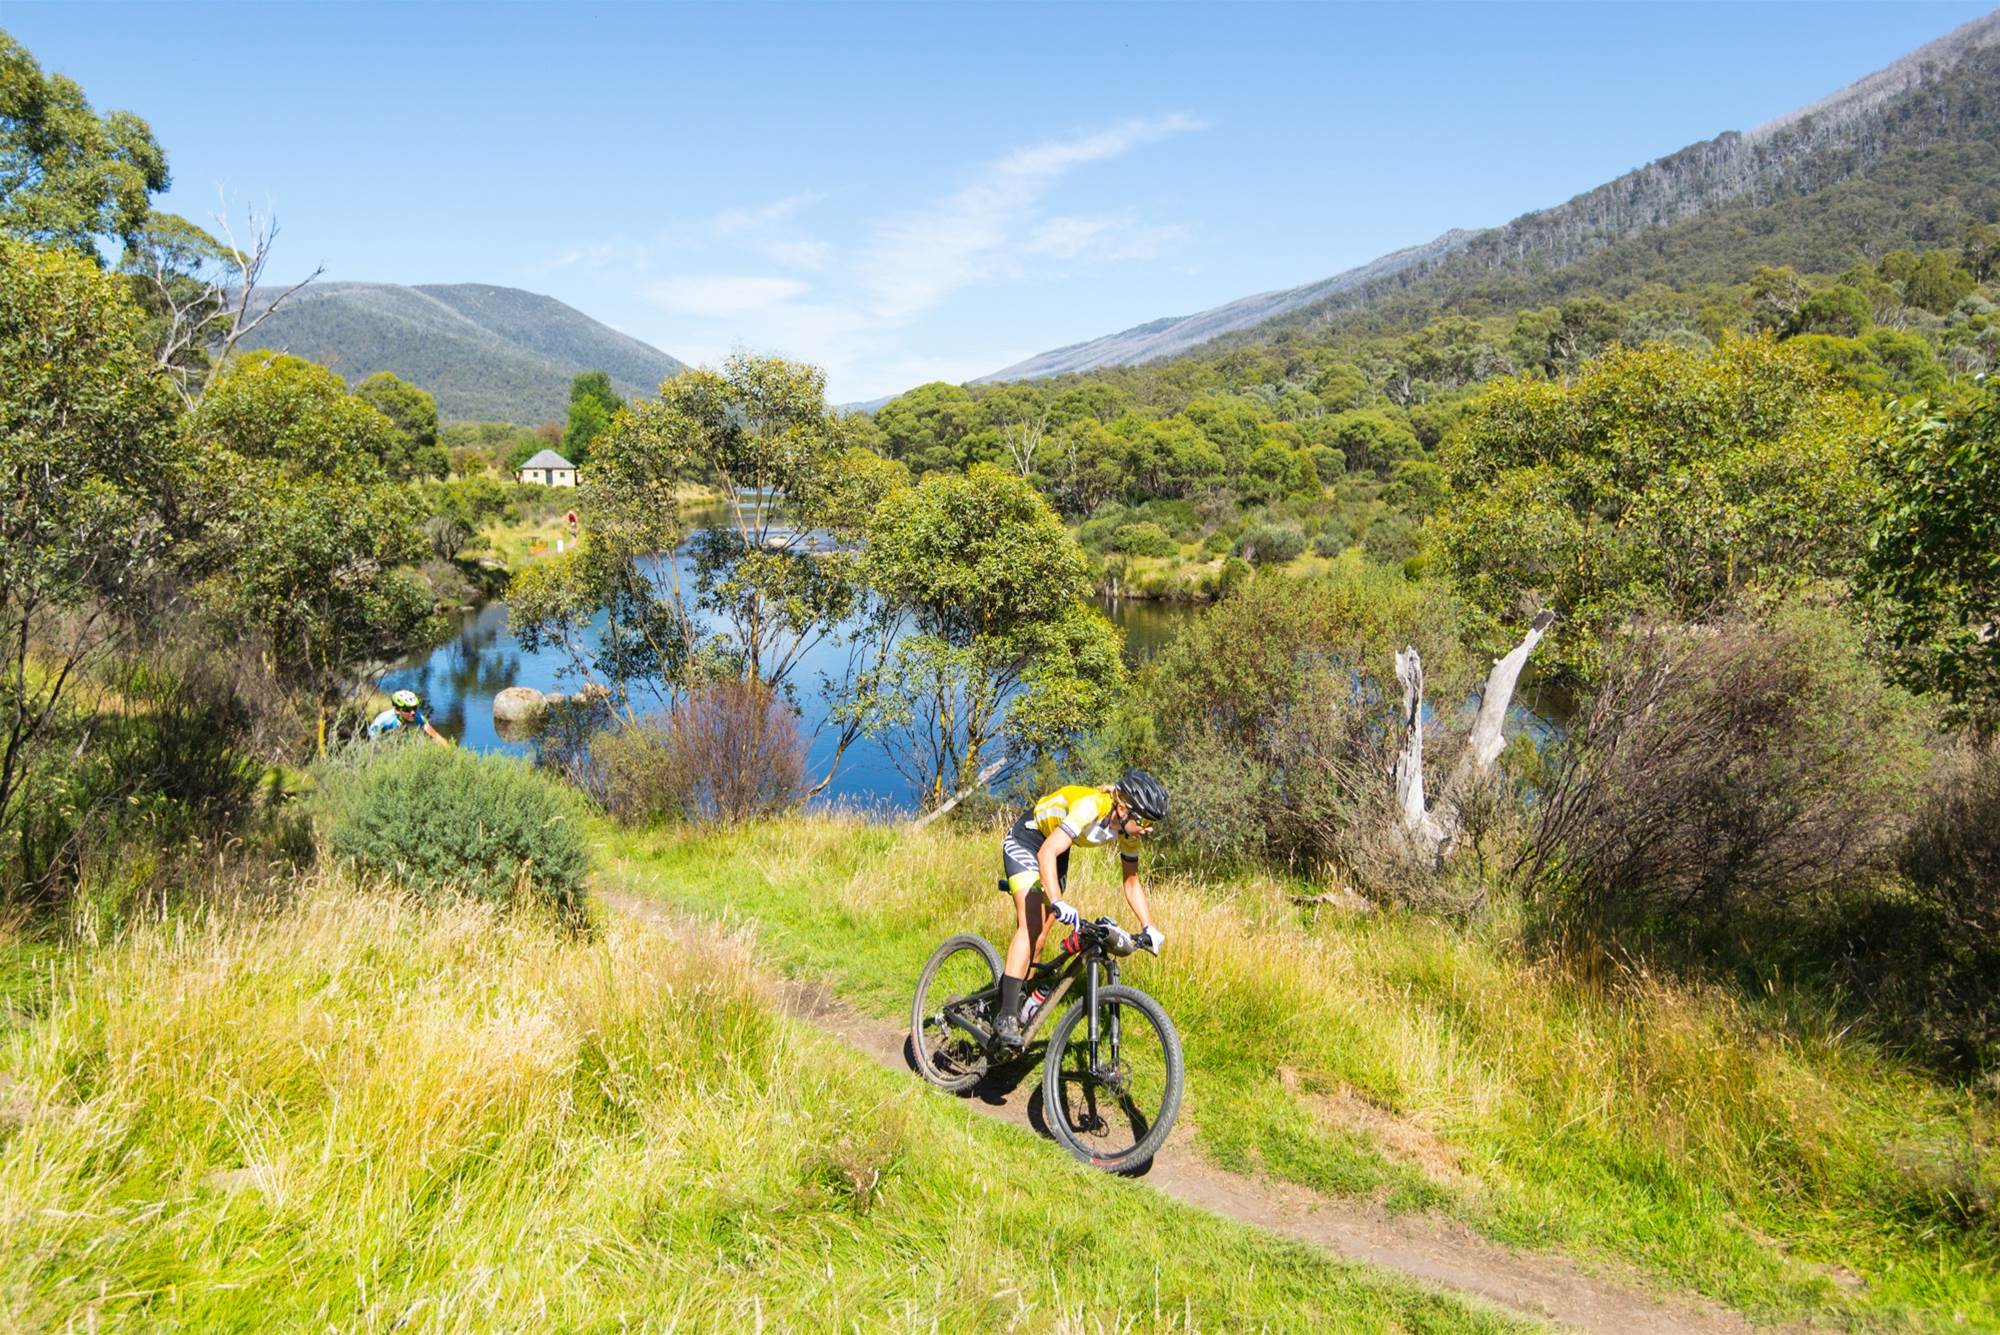 Win 2 nights for 2 people at Lake Crackenback Resort and Spa!